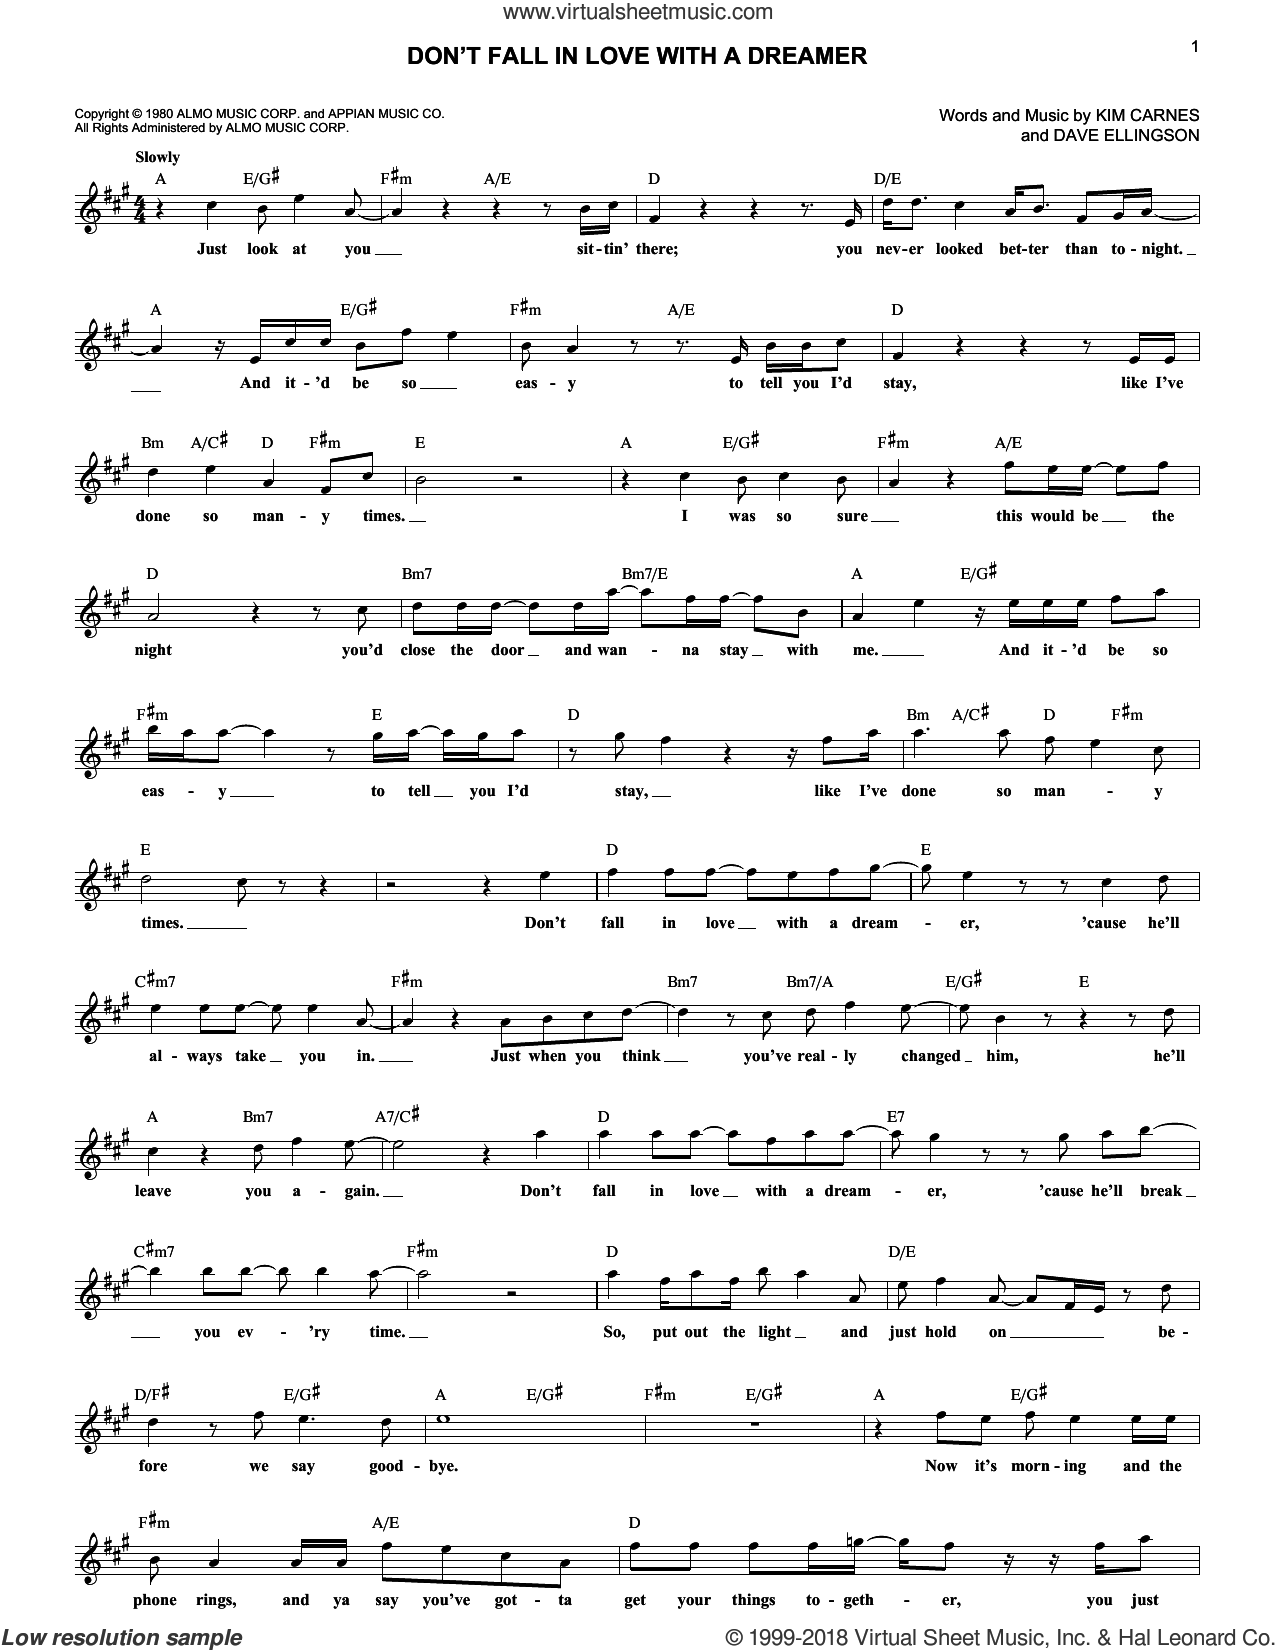 Don't Fall In Love With A Dreamer sheet music for voice and other instruments (fake book) by Kim Carnes and Dave Ellingson. Score Image Preview.